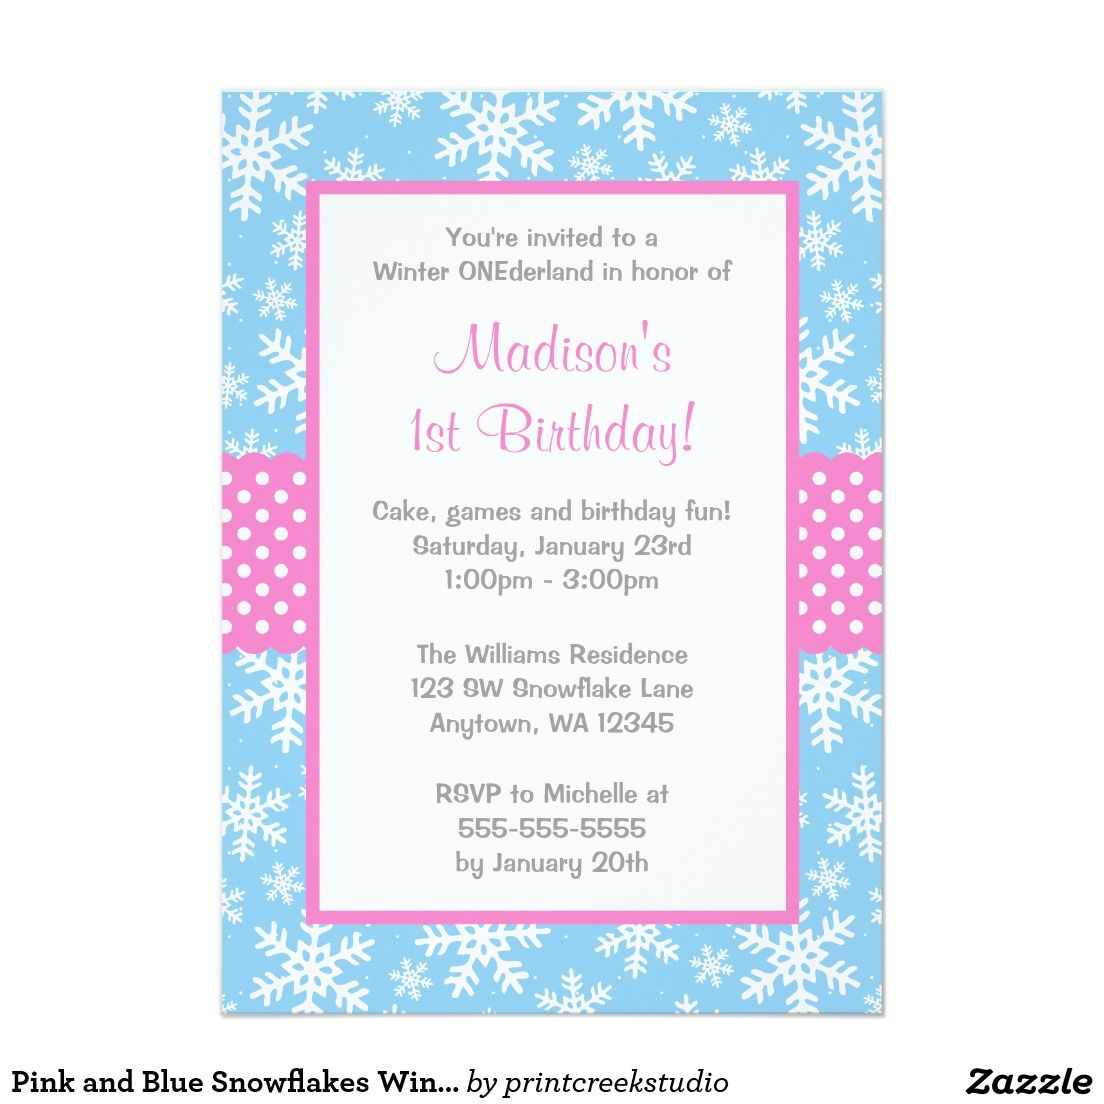 Pink and blue snowflakes winter ONEderland girl birthday invitations ...